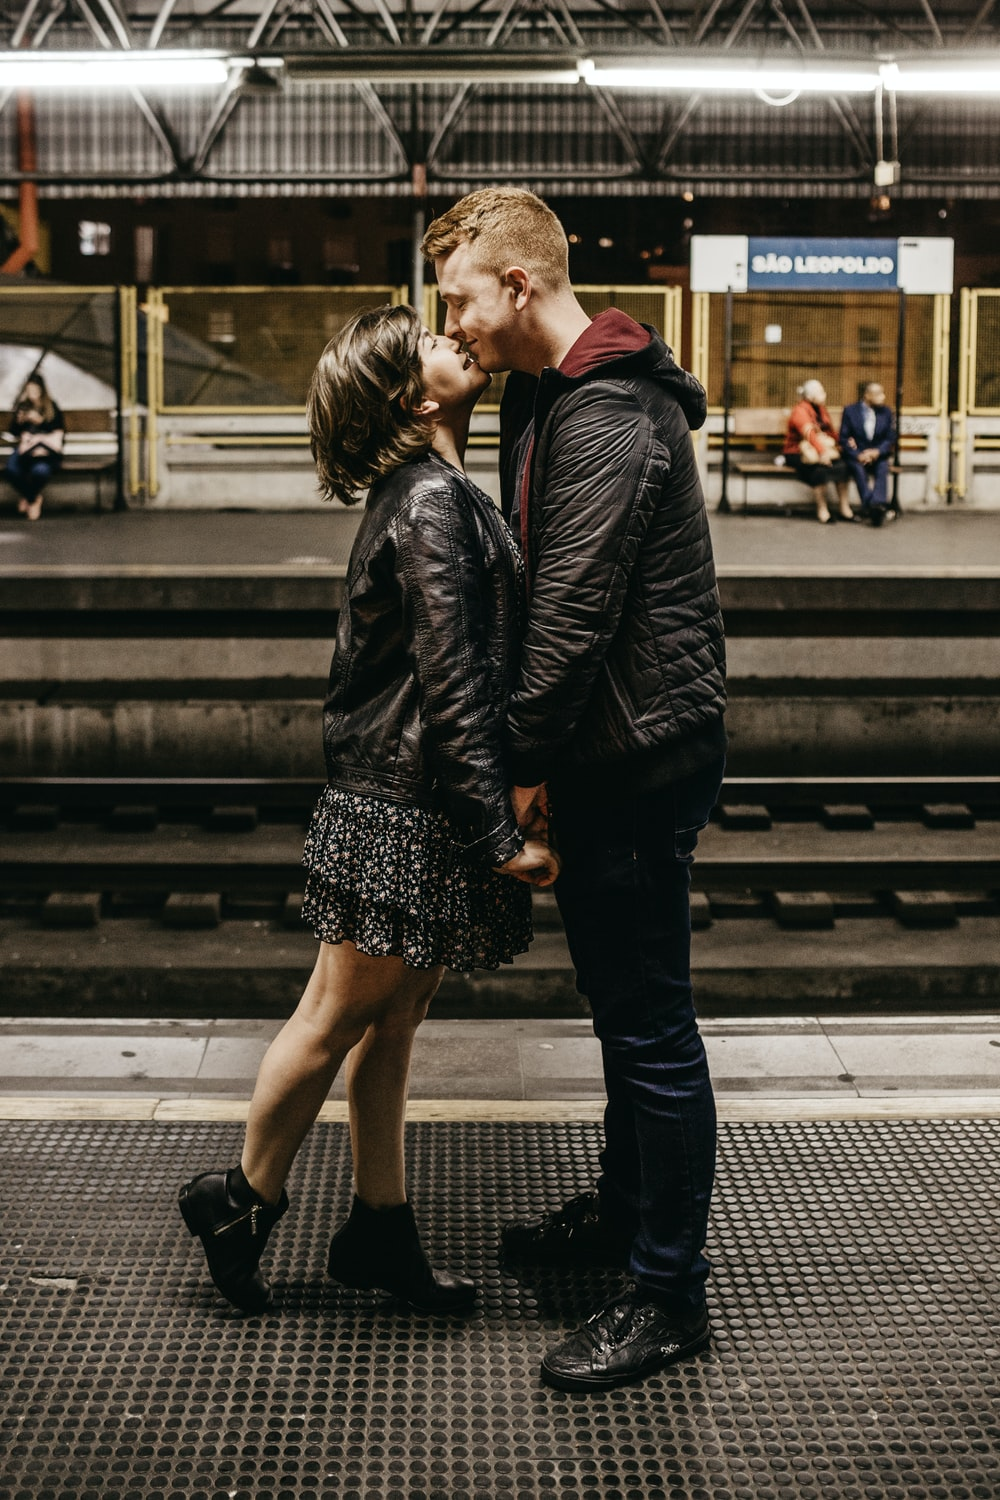 man and woman kissing beside train rails